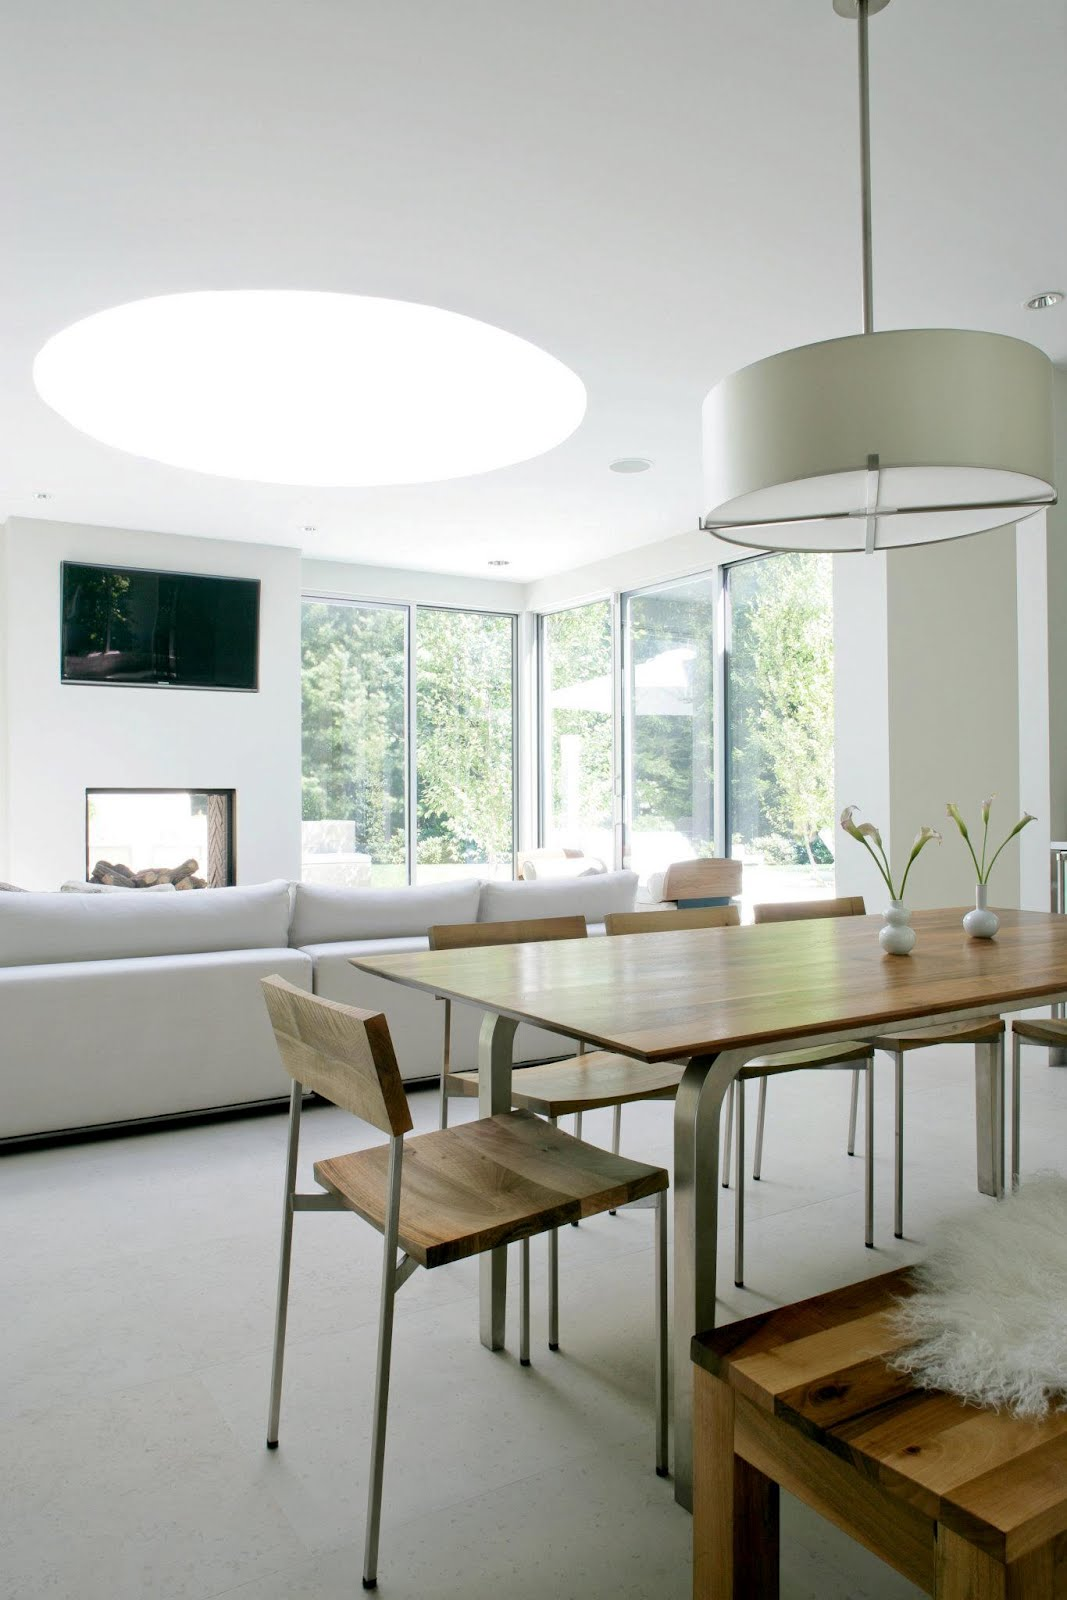 Modern Farmhouse Interior Design: SEE THIS HOUSE: WHITE ON WHITE IN A MODERN HAMPTONS